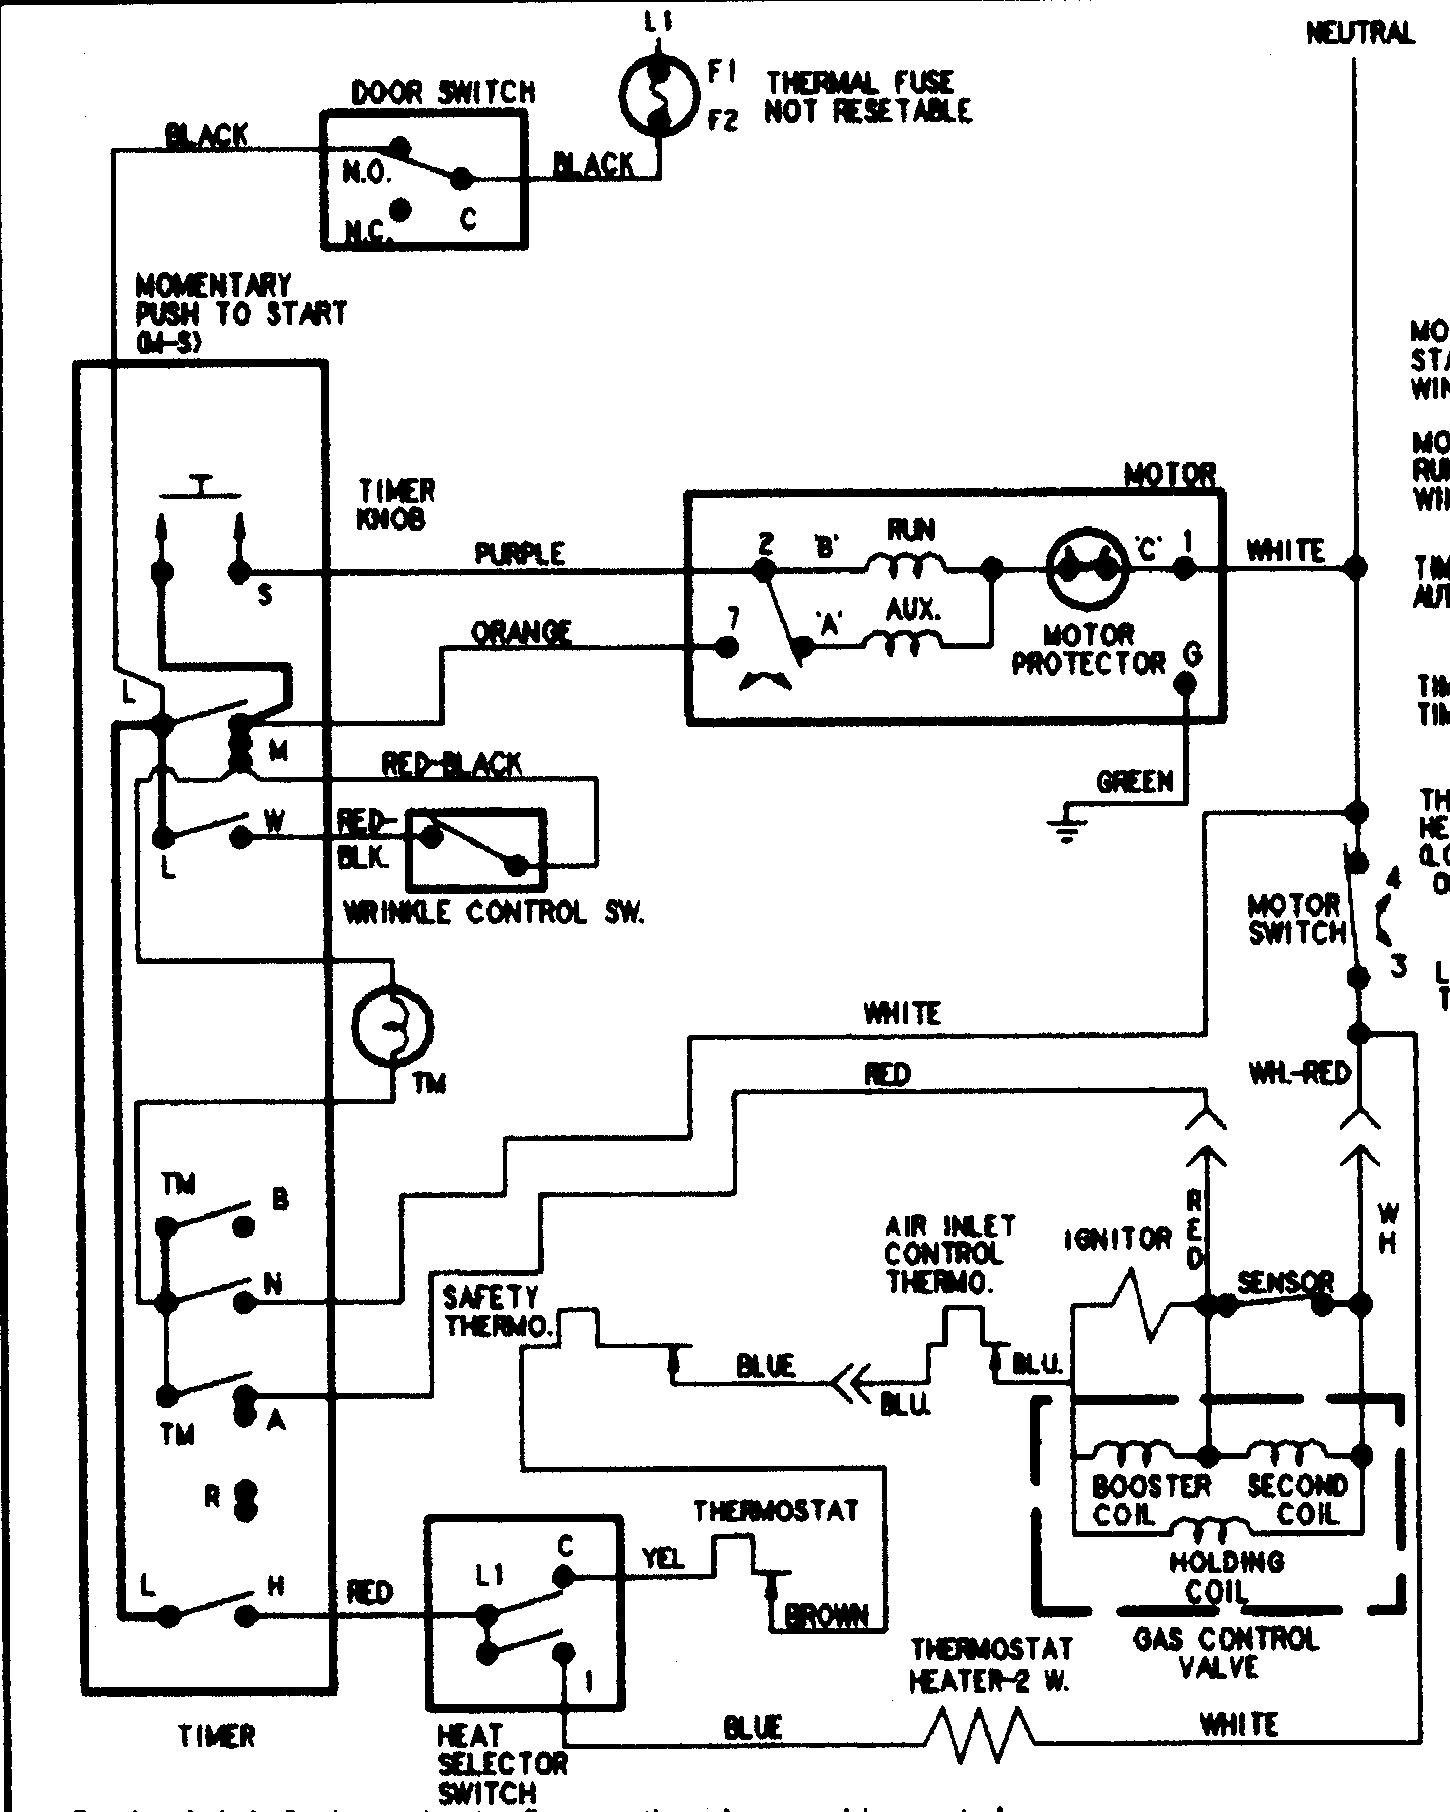 3 phase sub panel wiring diagram with Square D 8910 Dpa 43 Wiring Diagram on 3 Phase Ct Meter Wiring Diagrams additionally Help Sub Panels 208479 Print as well Nec Sub Panel Location additionally Wiring Diagram Breaker Panel as well Small Engine Ignition Switch Wiring Diagram.